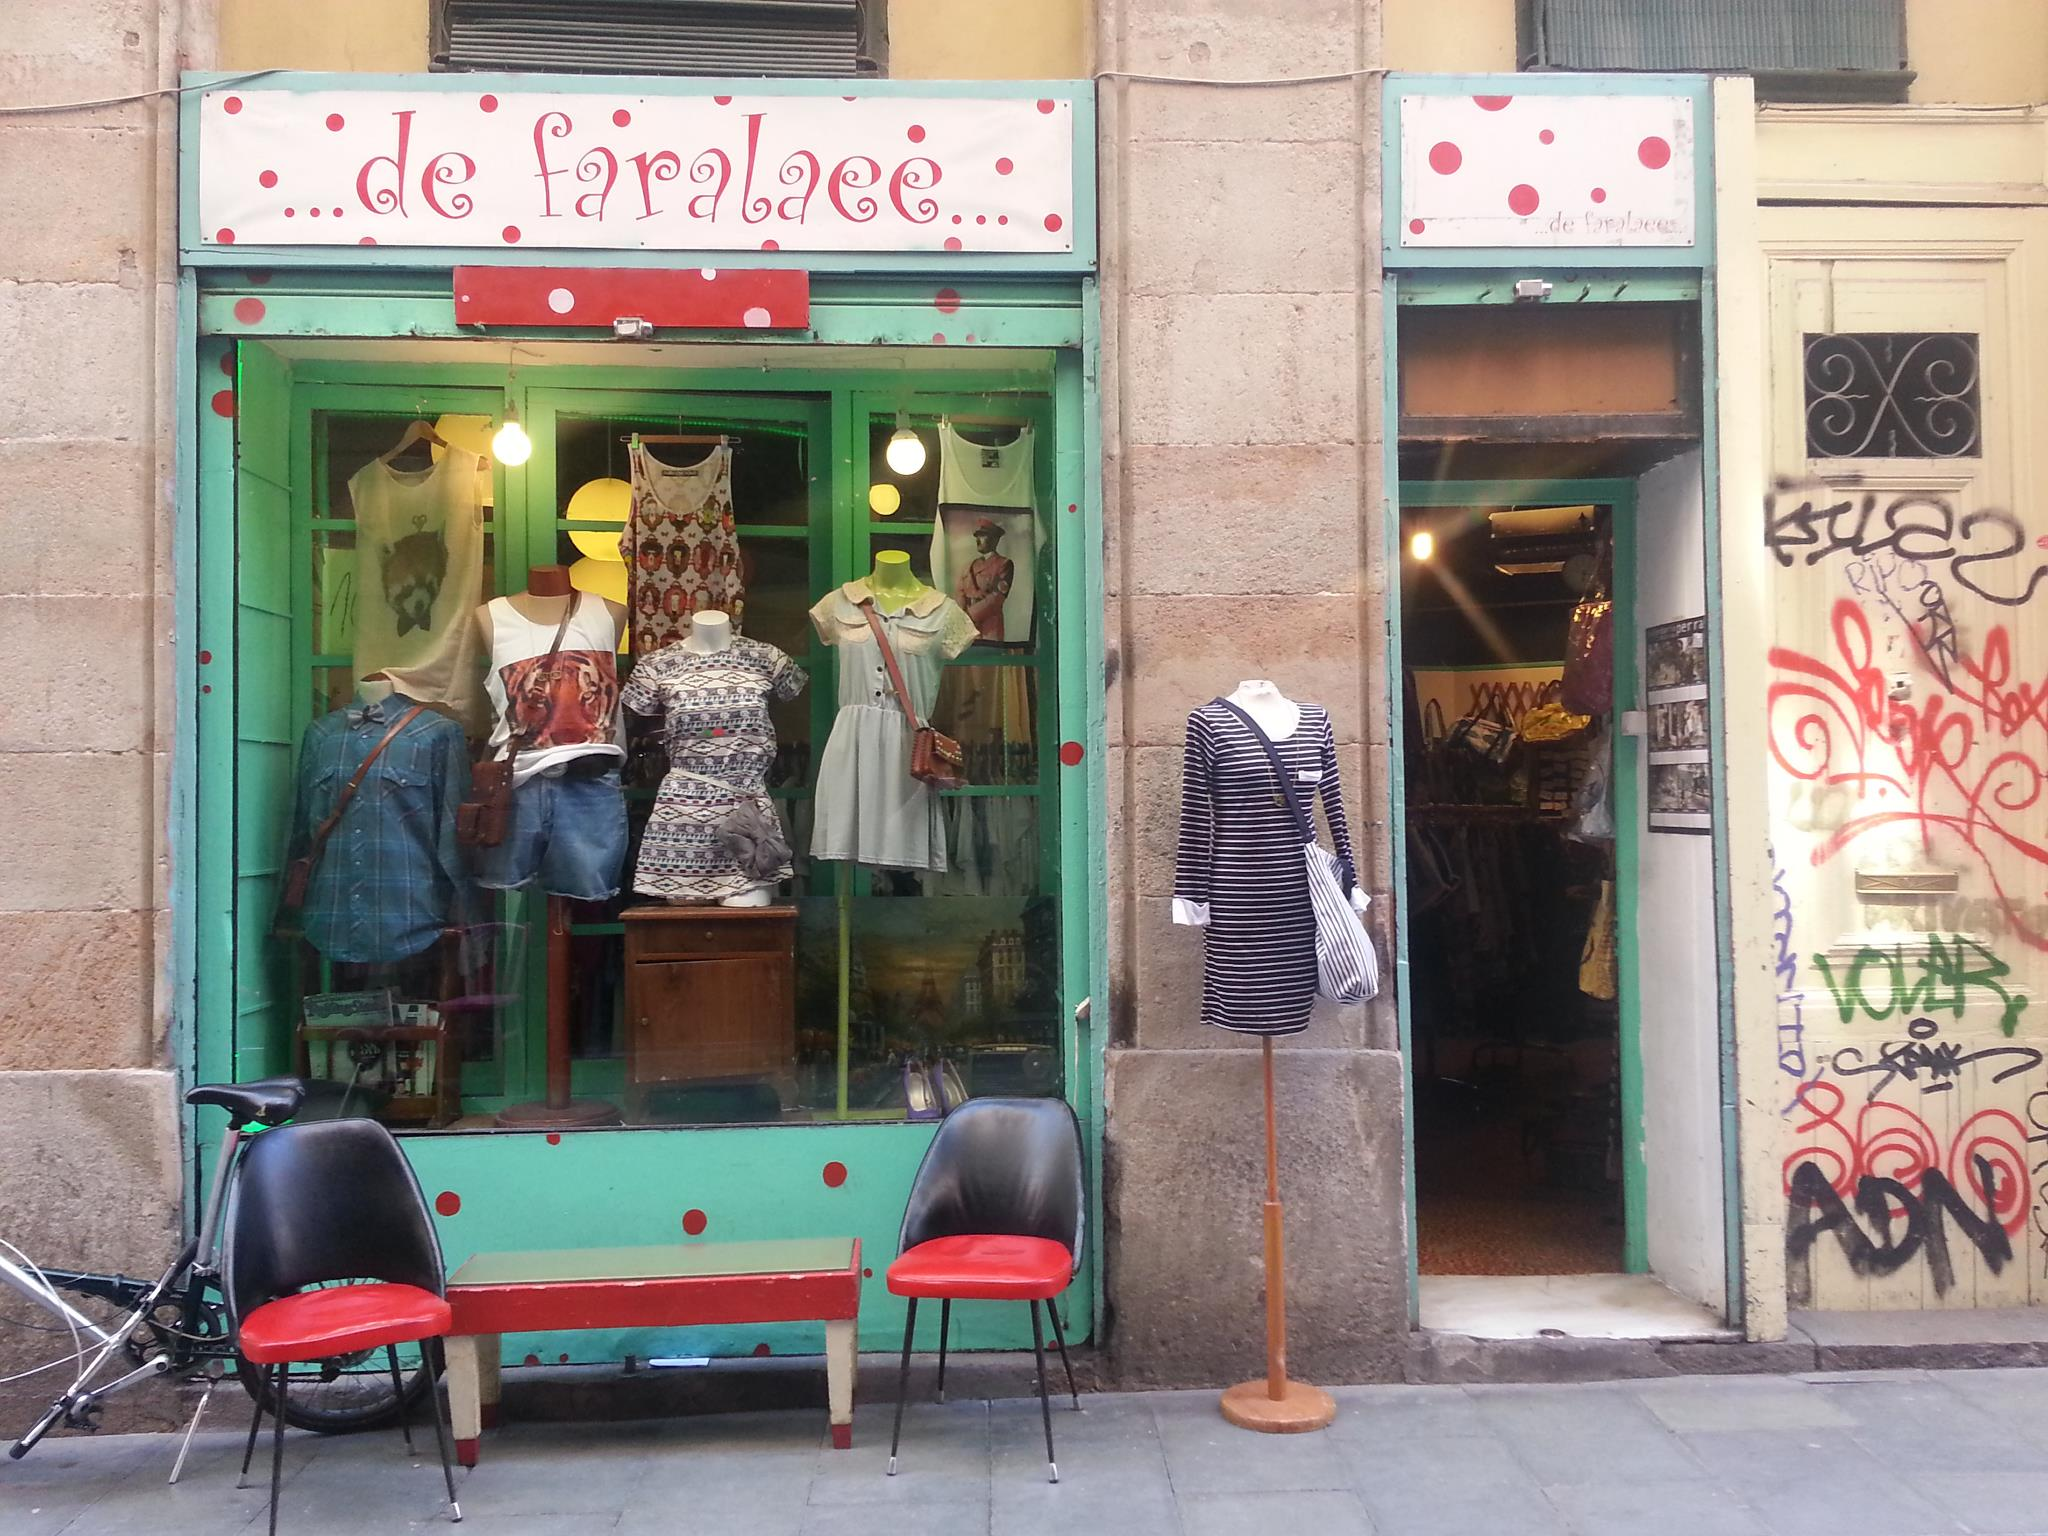 I loved the little indie shops all over Barcelona.